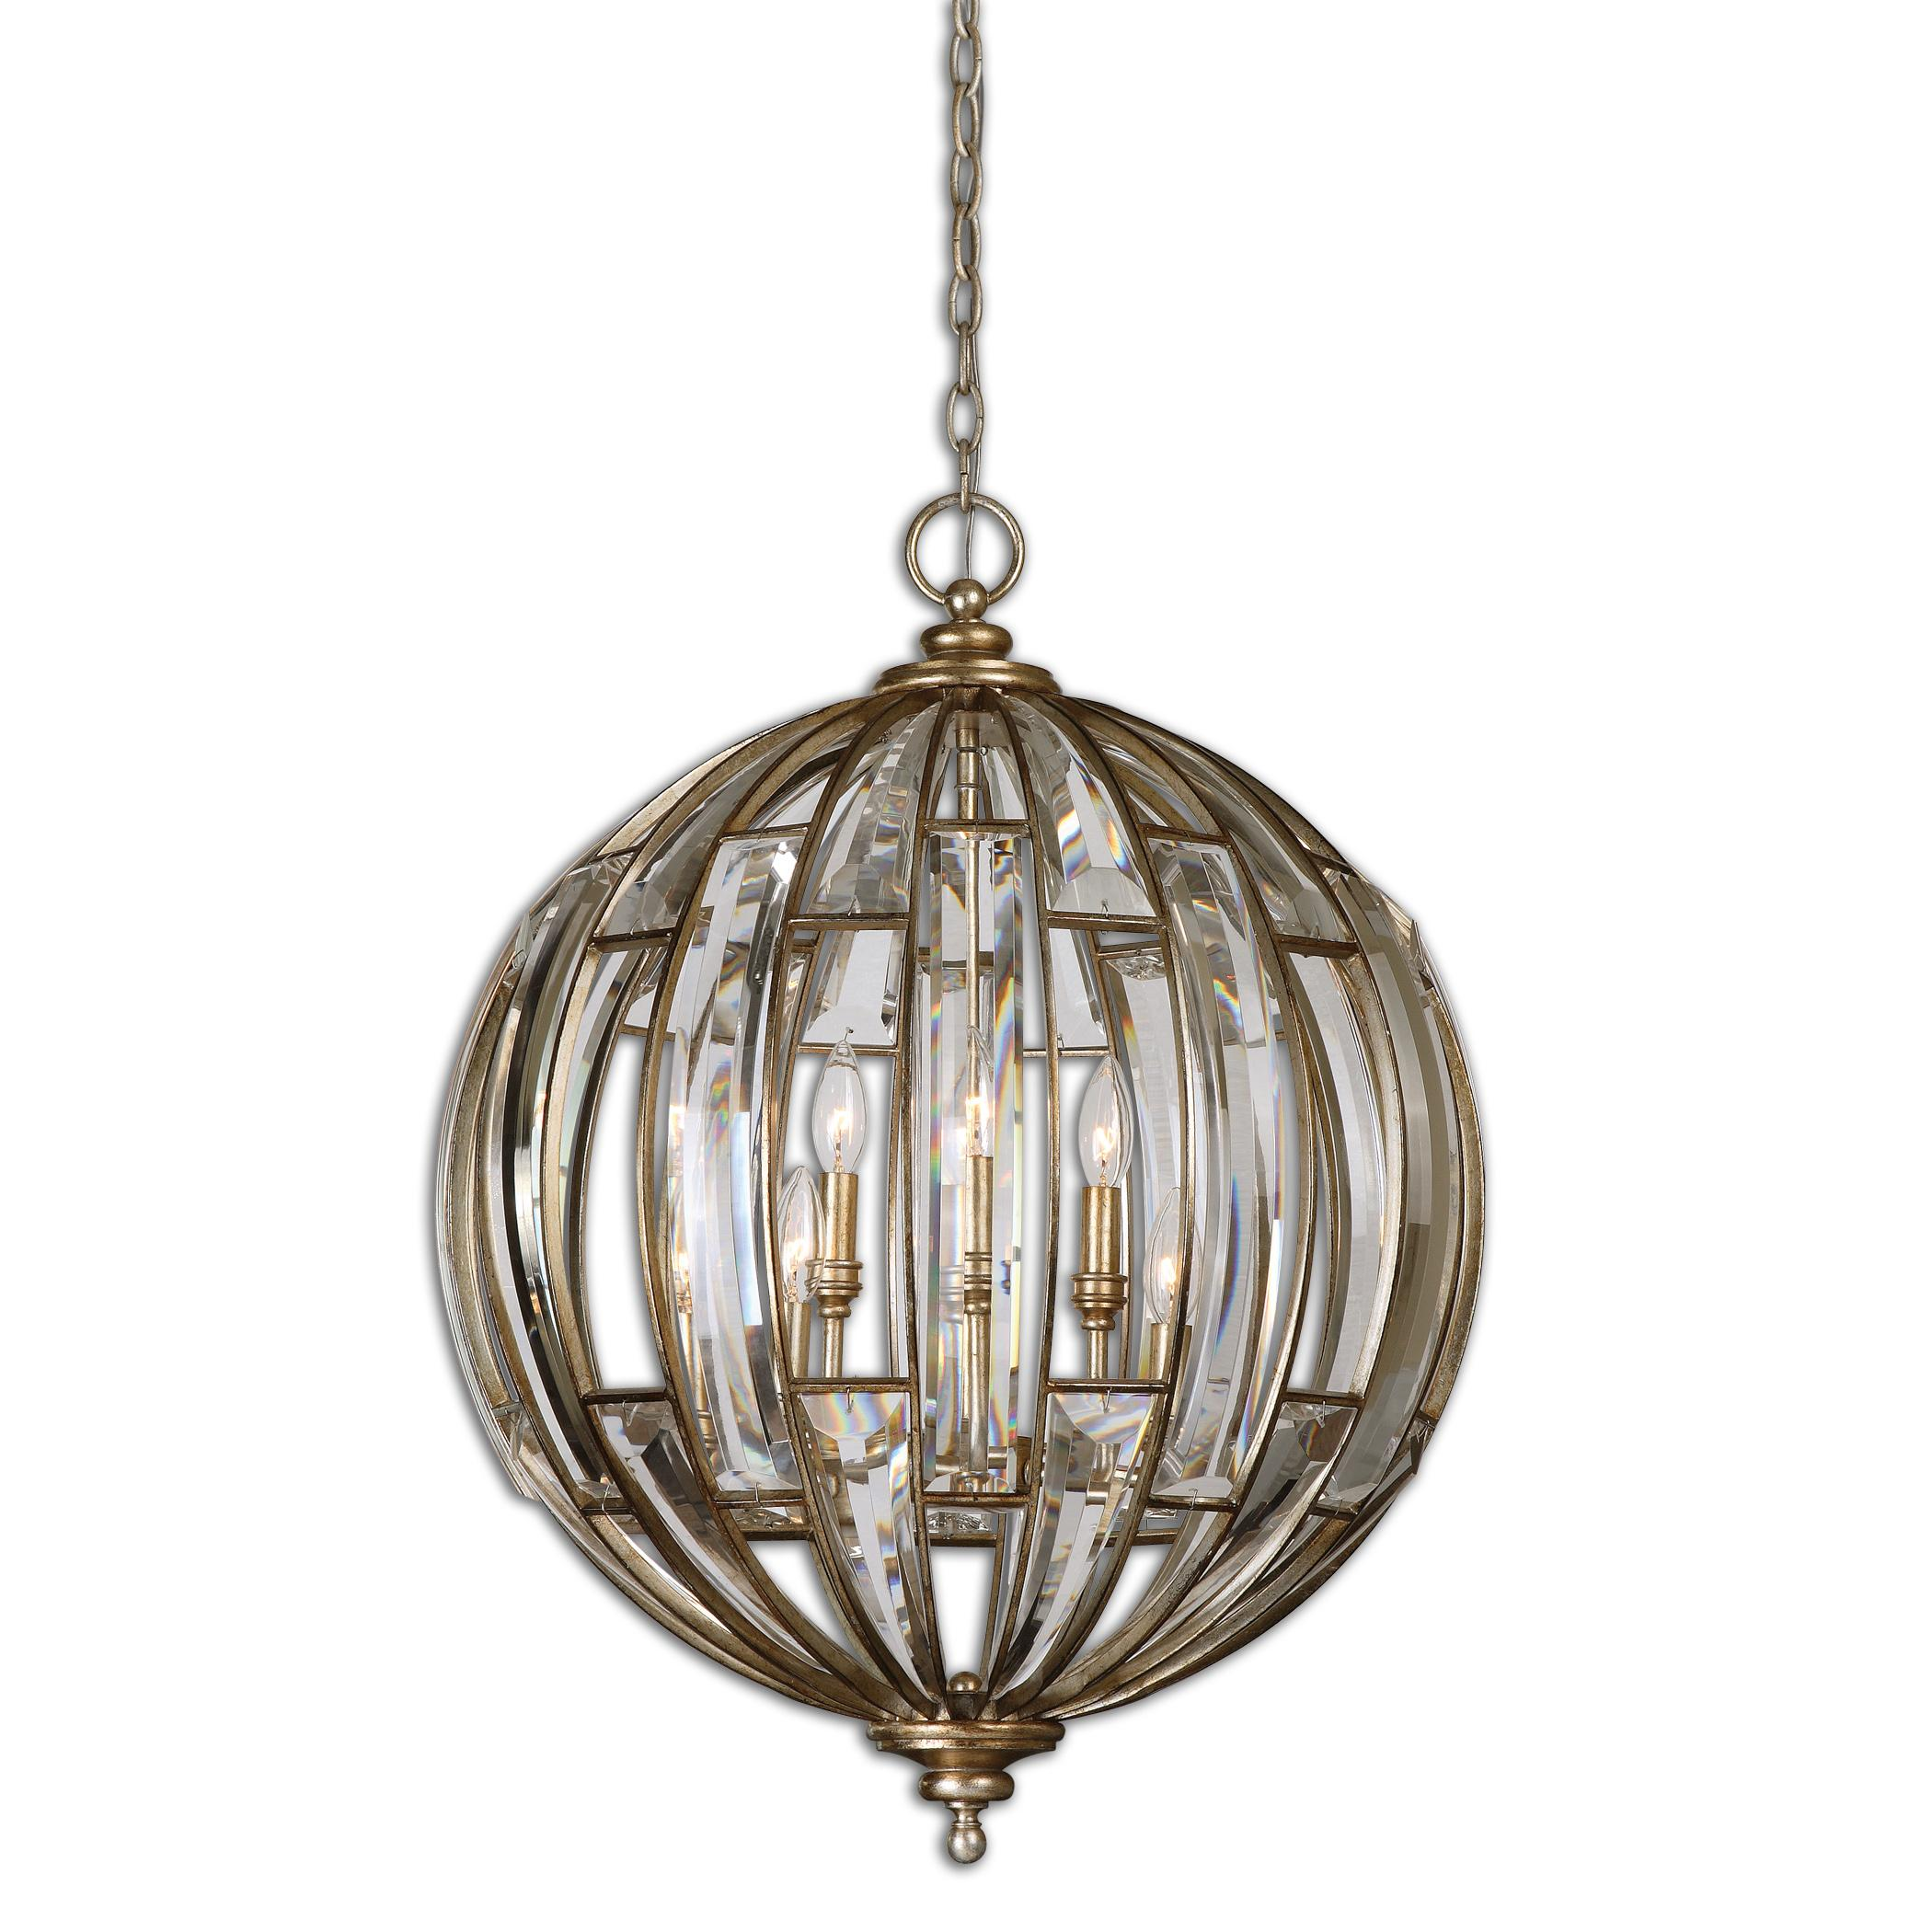 Uttermost Lighting Fixtures Uttermost Vicentina 6 Light Sphere Pendant - Item Number: 22031